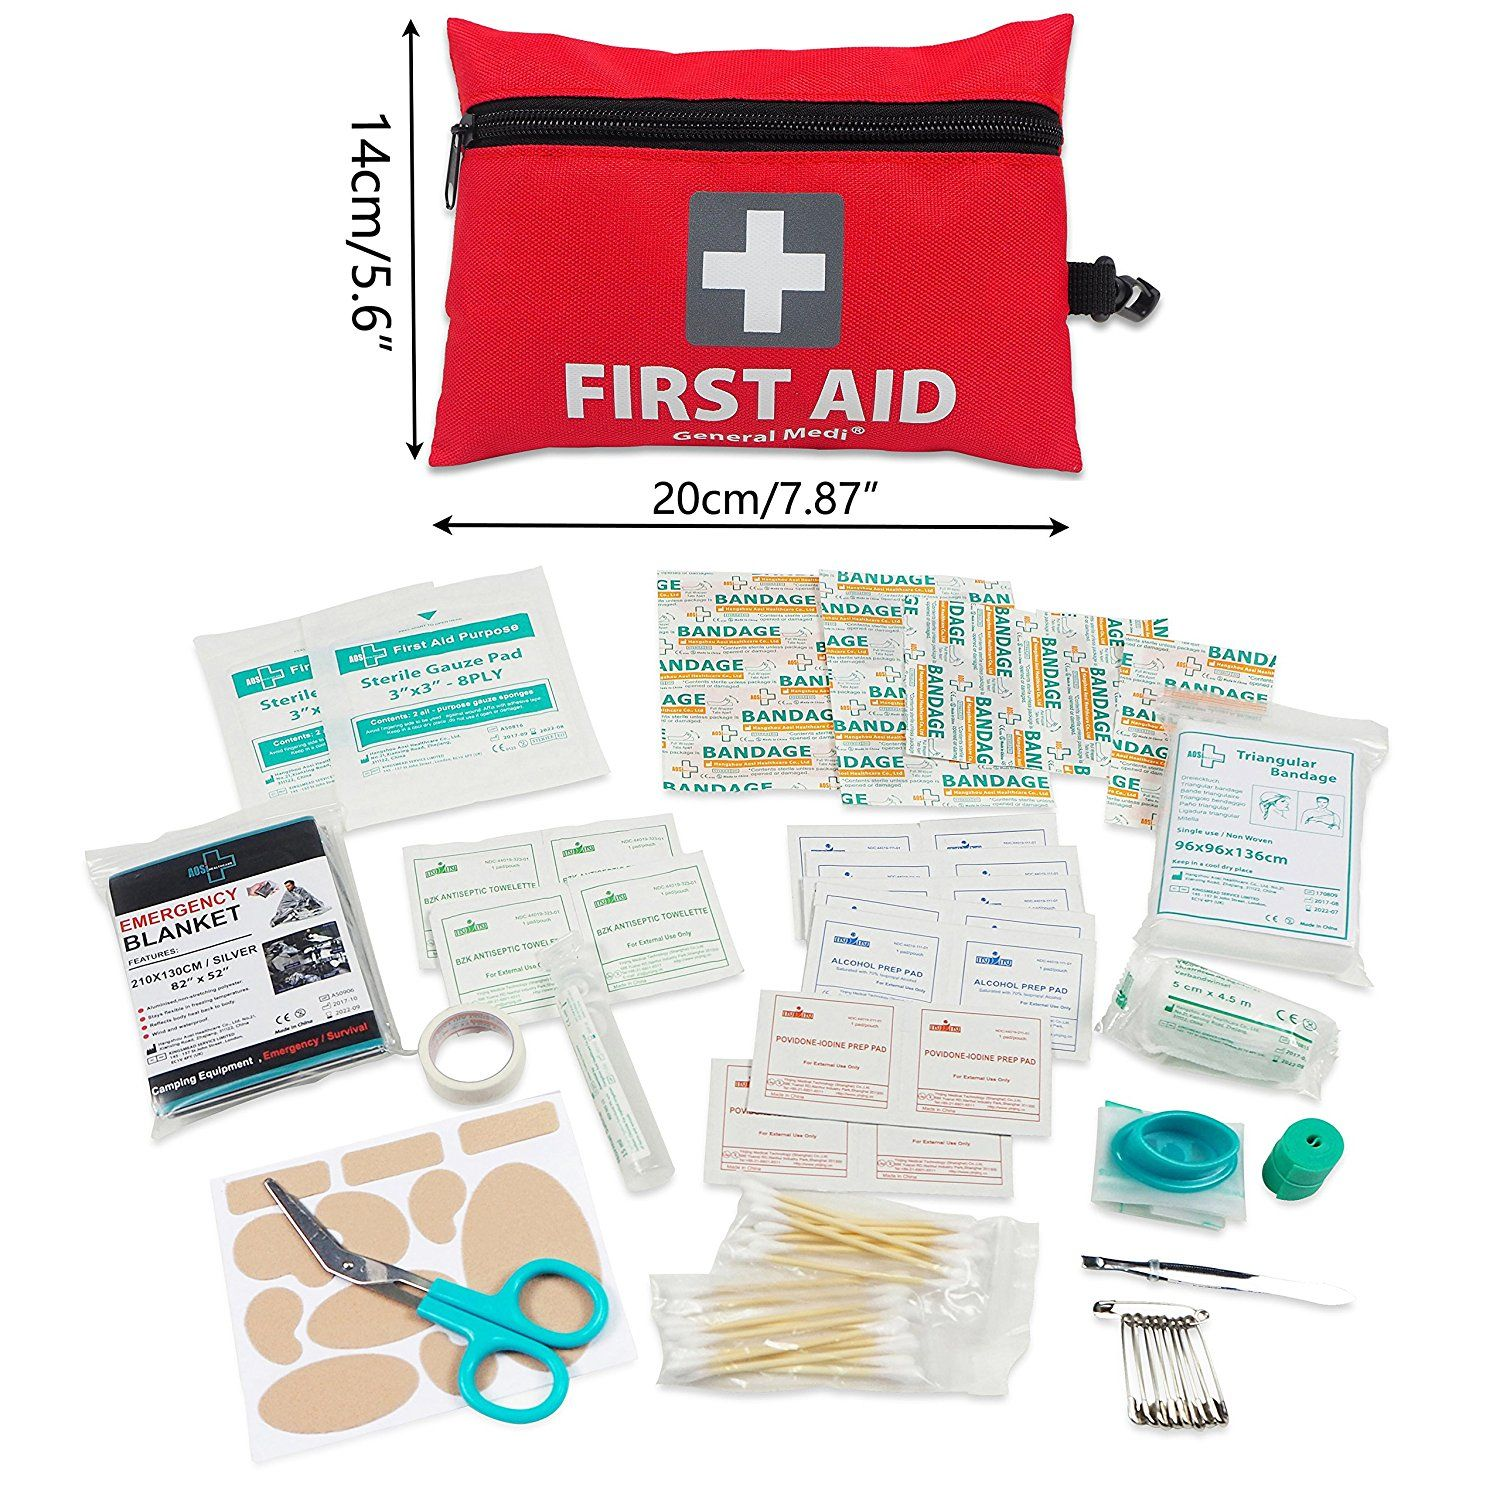 Mini First Aid Kit 92 Pieces Small First Aid Kit Includes Emergency Foil Blanket Cpr Face Mask Scissors Mini First Aid Kit First Aid Kit Travel First Aid Kit